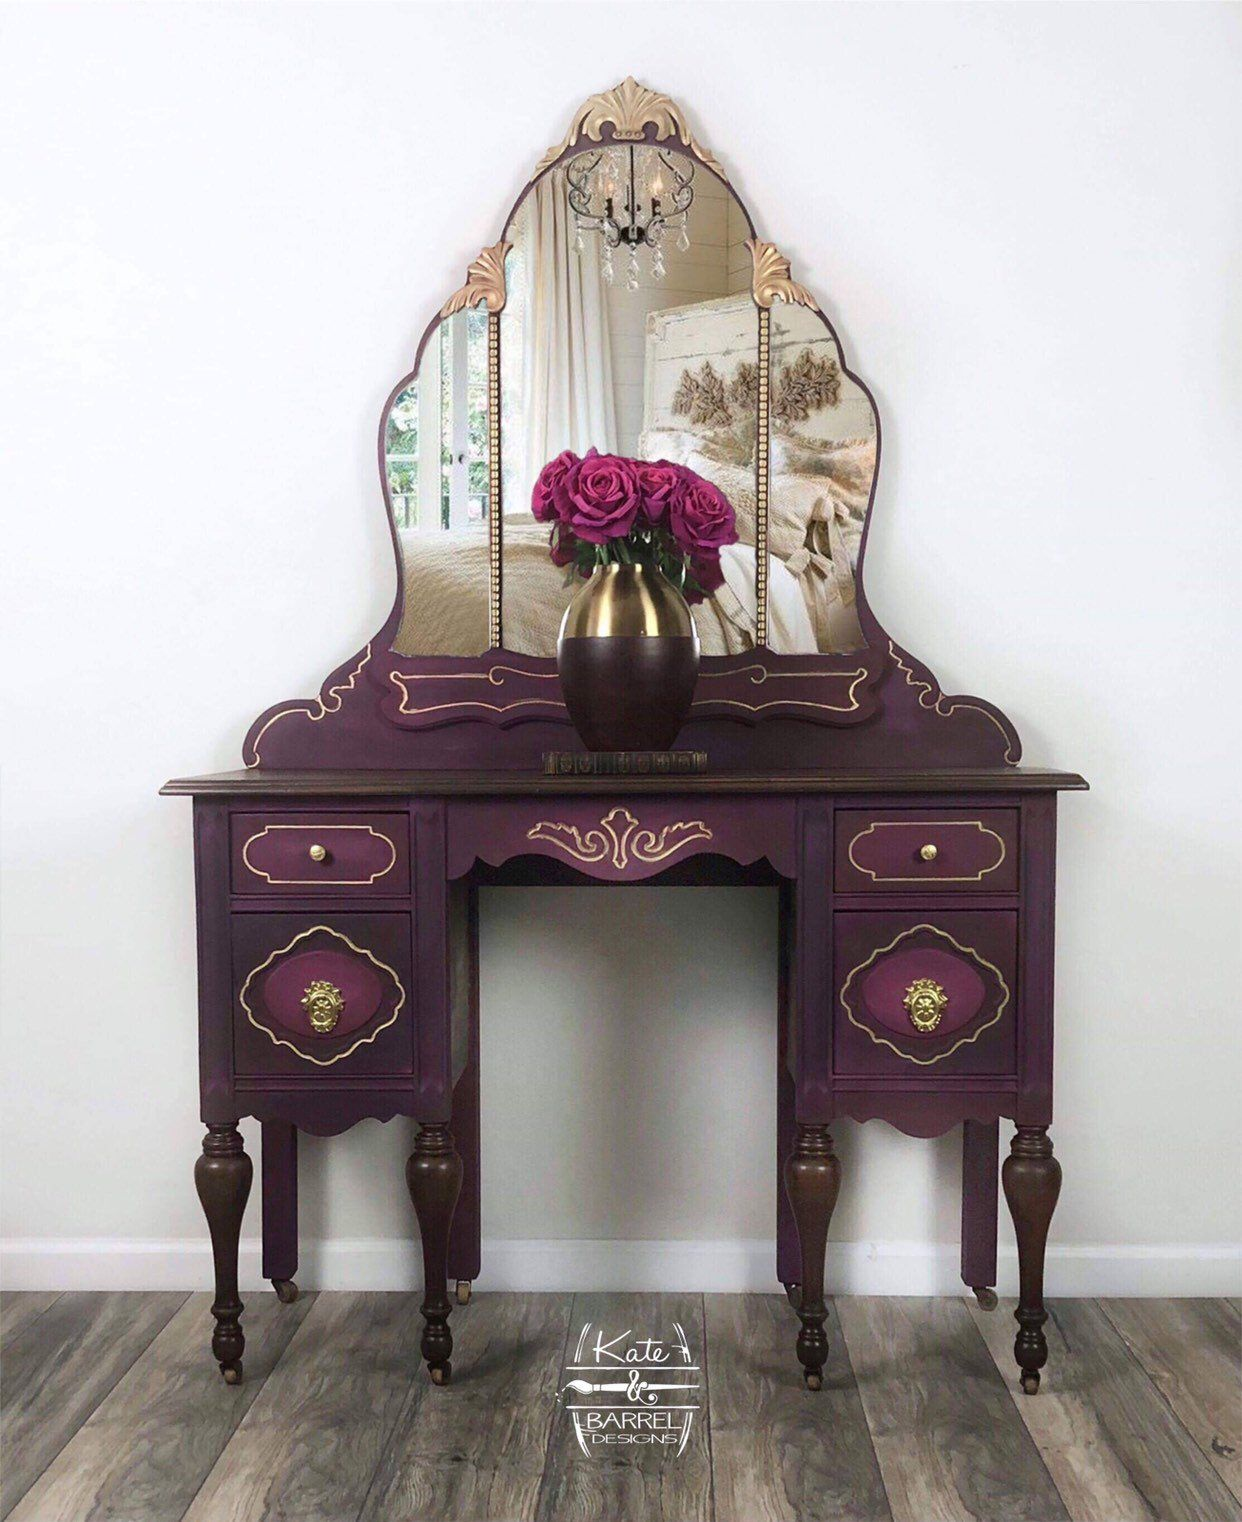 Furniture French Style Antique And Vintage Makeup Vanity Table With 3 Folding Mirror Set An Vanity Table Vintage Vintage Dressing Tables Mirrored Vanity Table